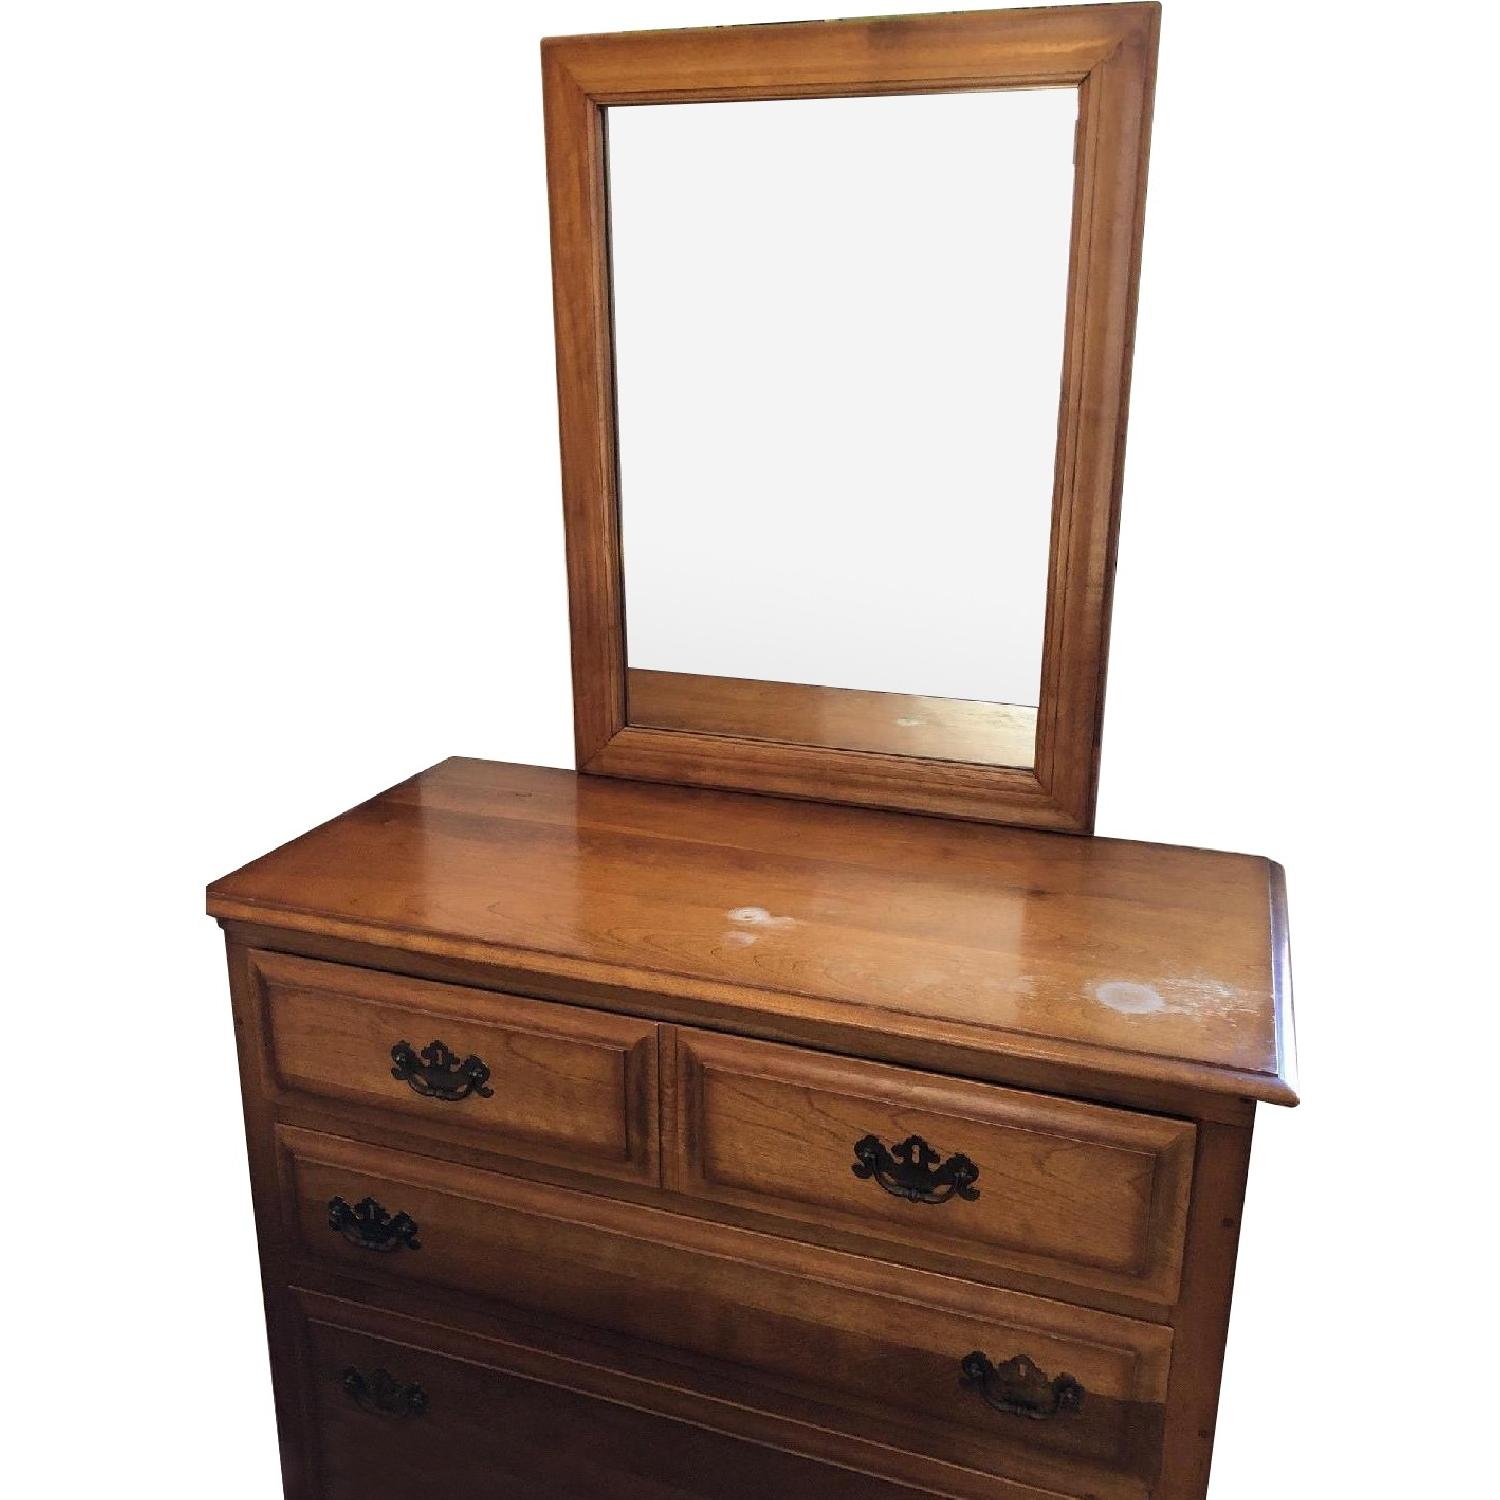 Wood Dresser w/ Mirror - image-0